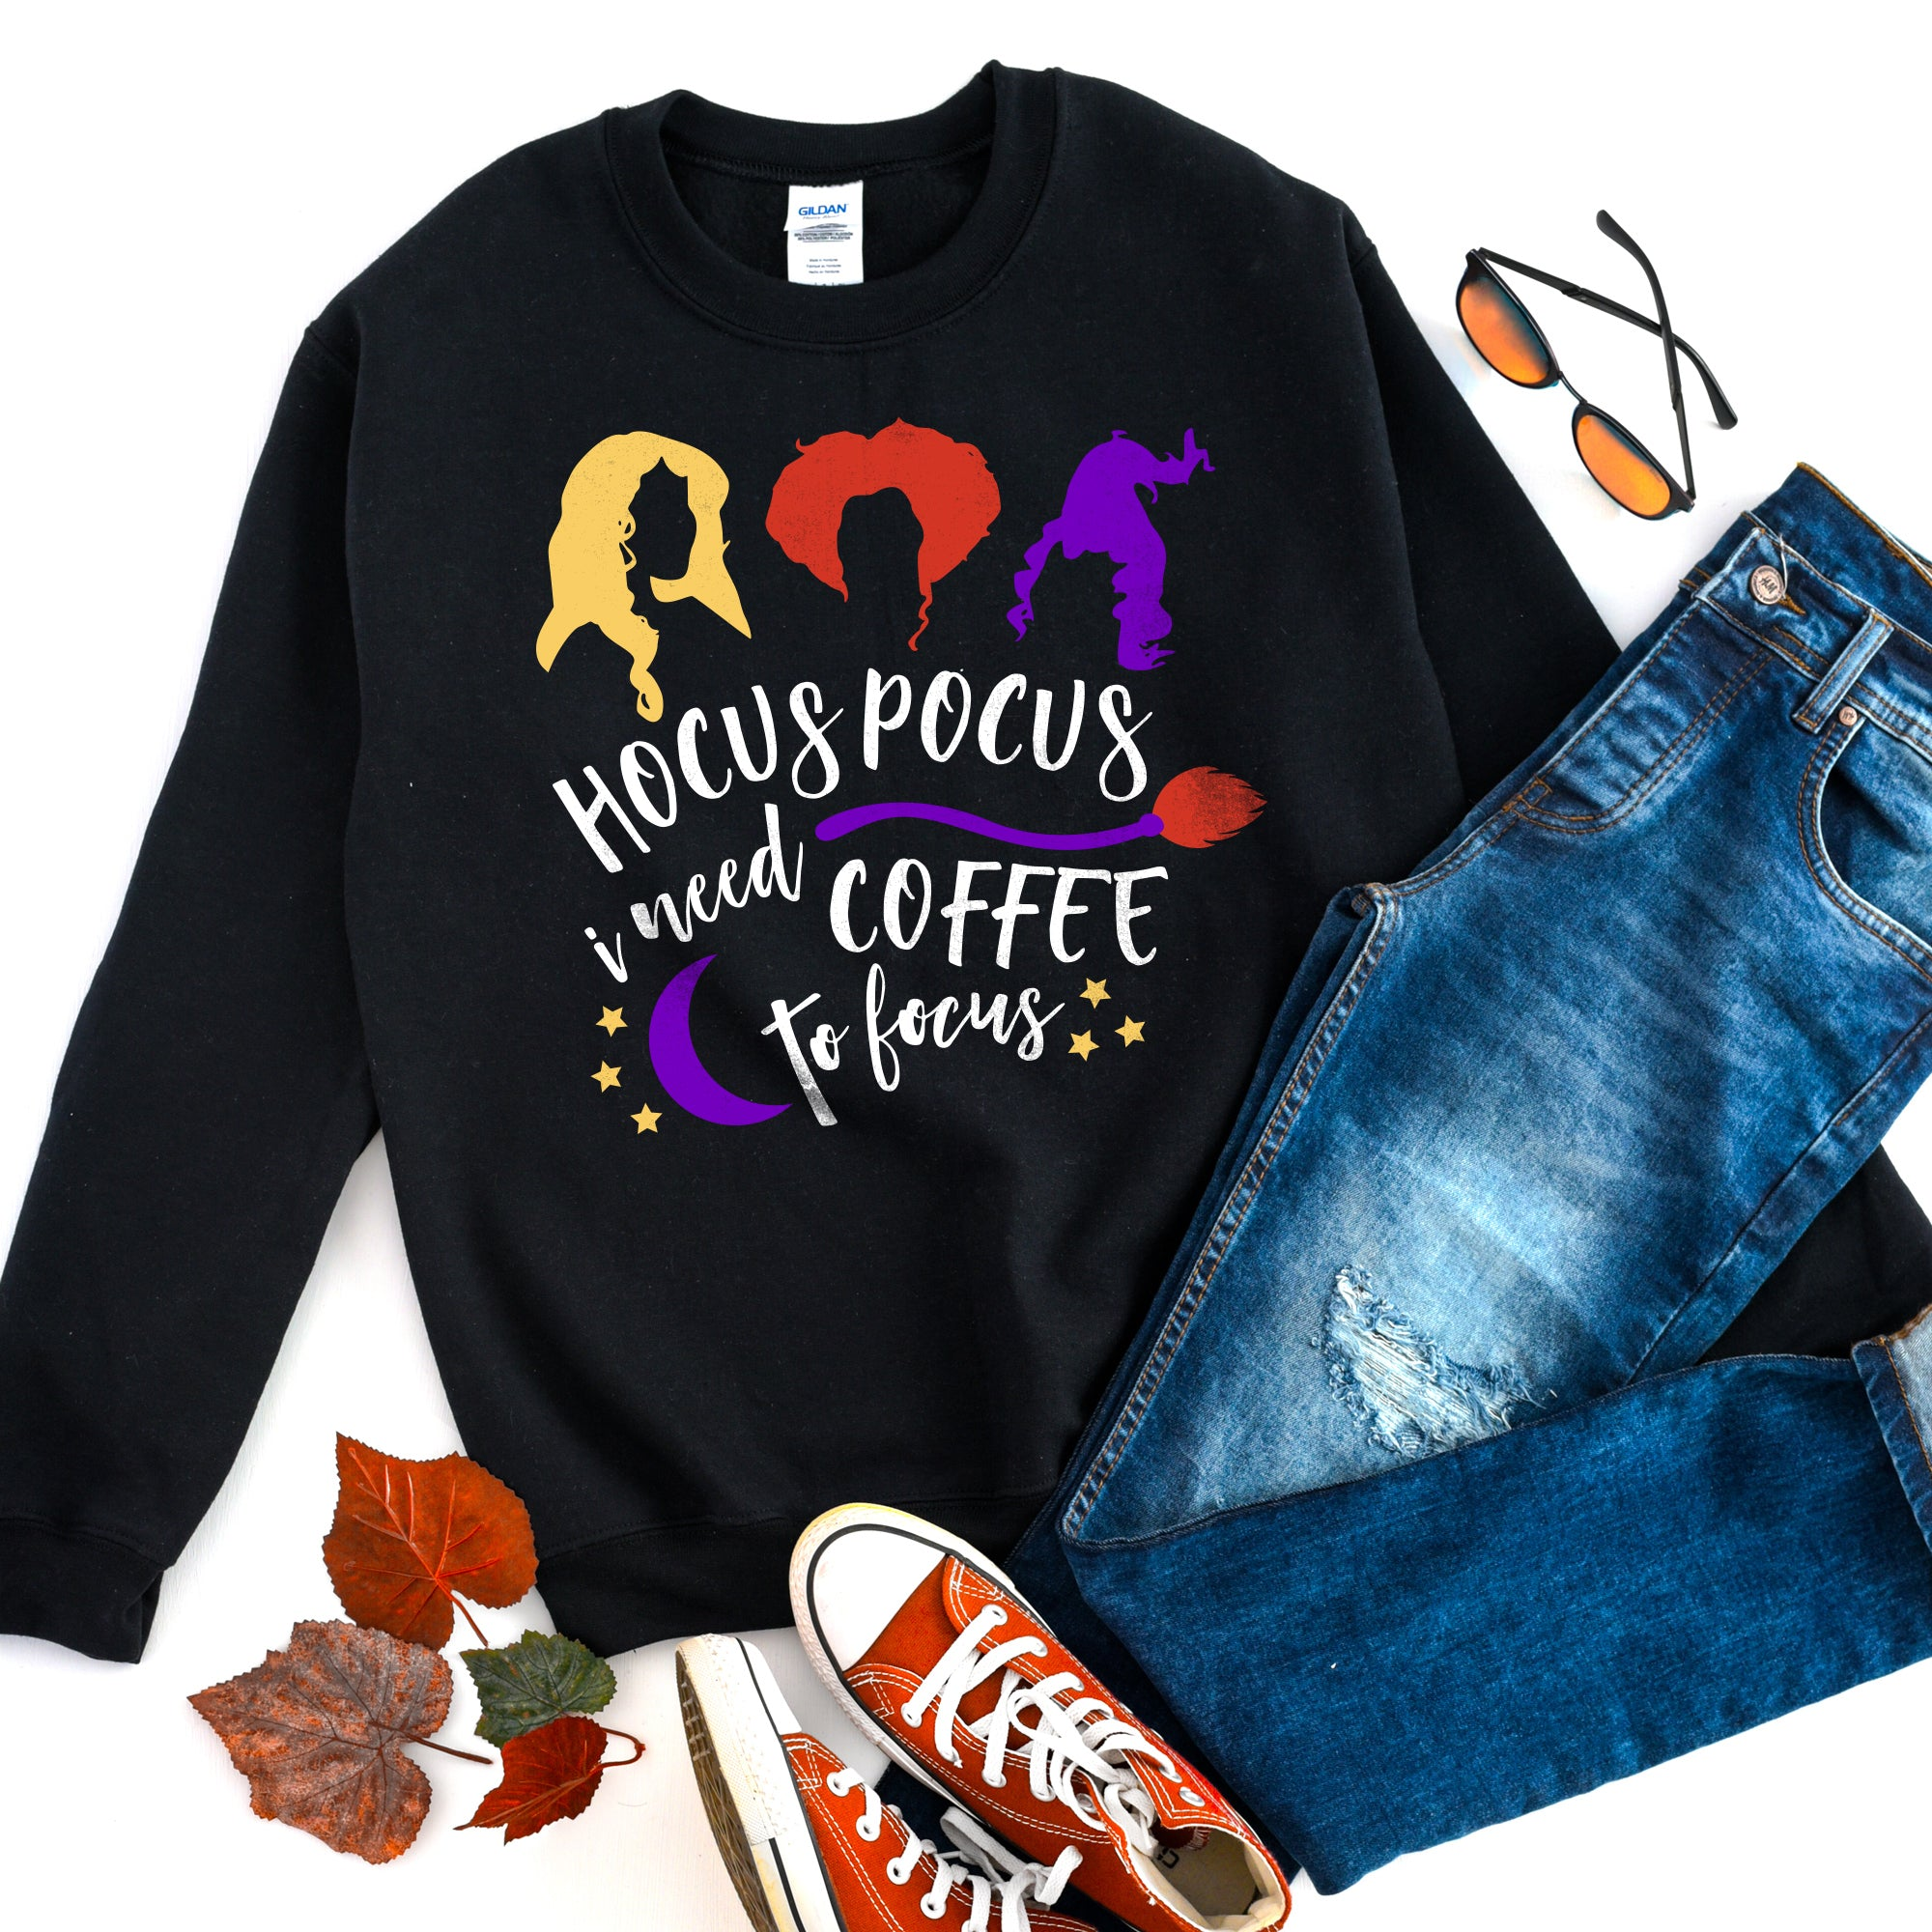 Hocus Pocus I Need Coffee to Focus Sweatshirt Halloween Sweatshirt Hocus Pocus Sweatshirt Cute Funny Halloween Shirt